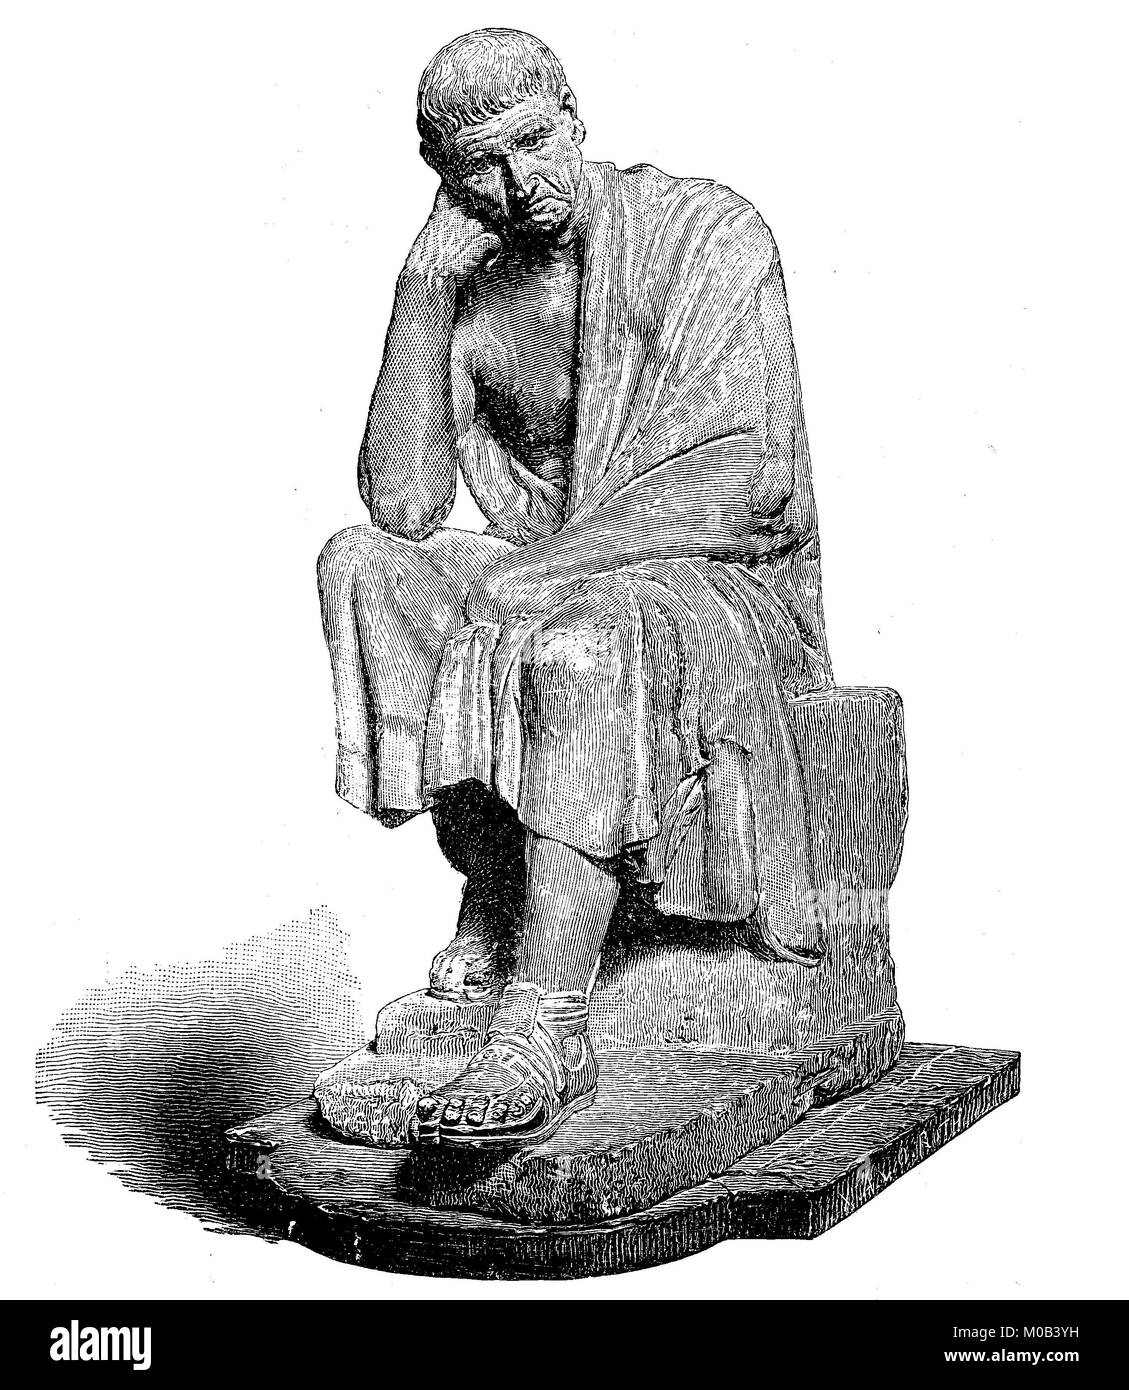 an overview of aristotle as the most influential greek thinker Introduction: aristotle's definition of happiness  aristotle is one of the greatest thinkers in the history of western science and philosophy, making  the greek word that usually gets translated as happiness is eudaimonia, and like most.